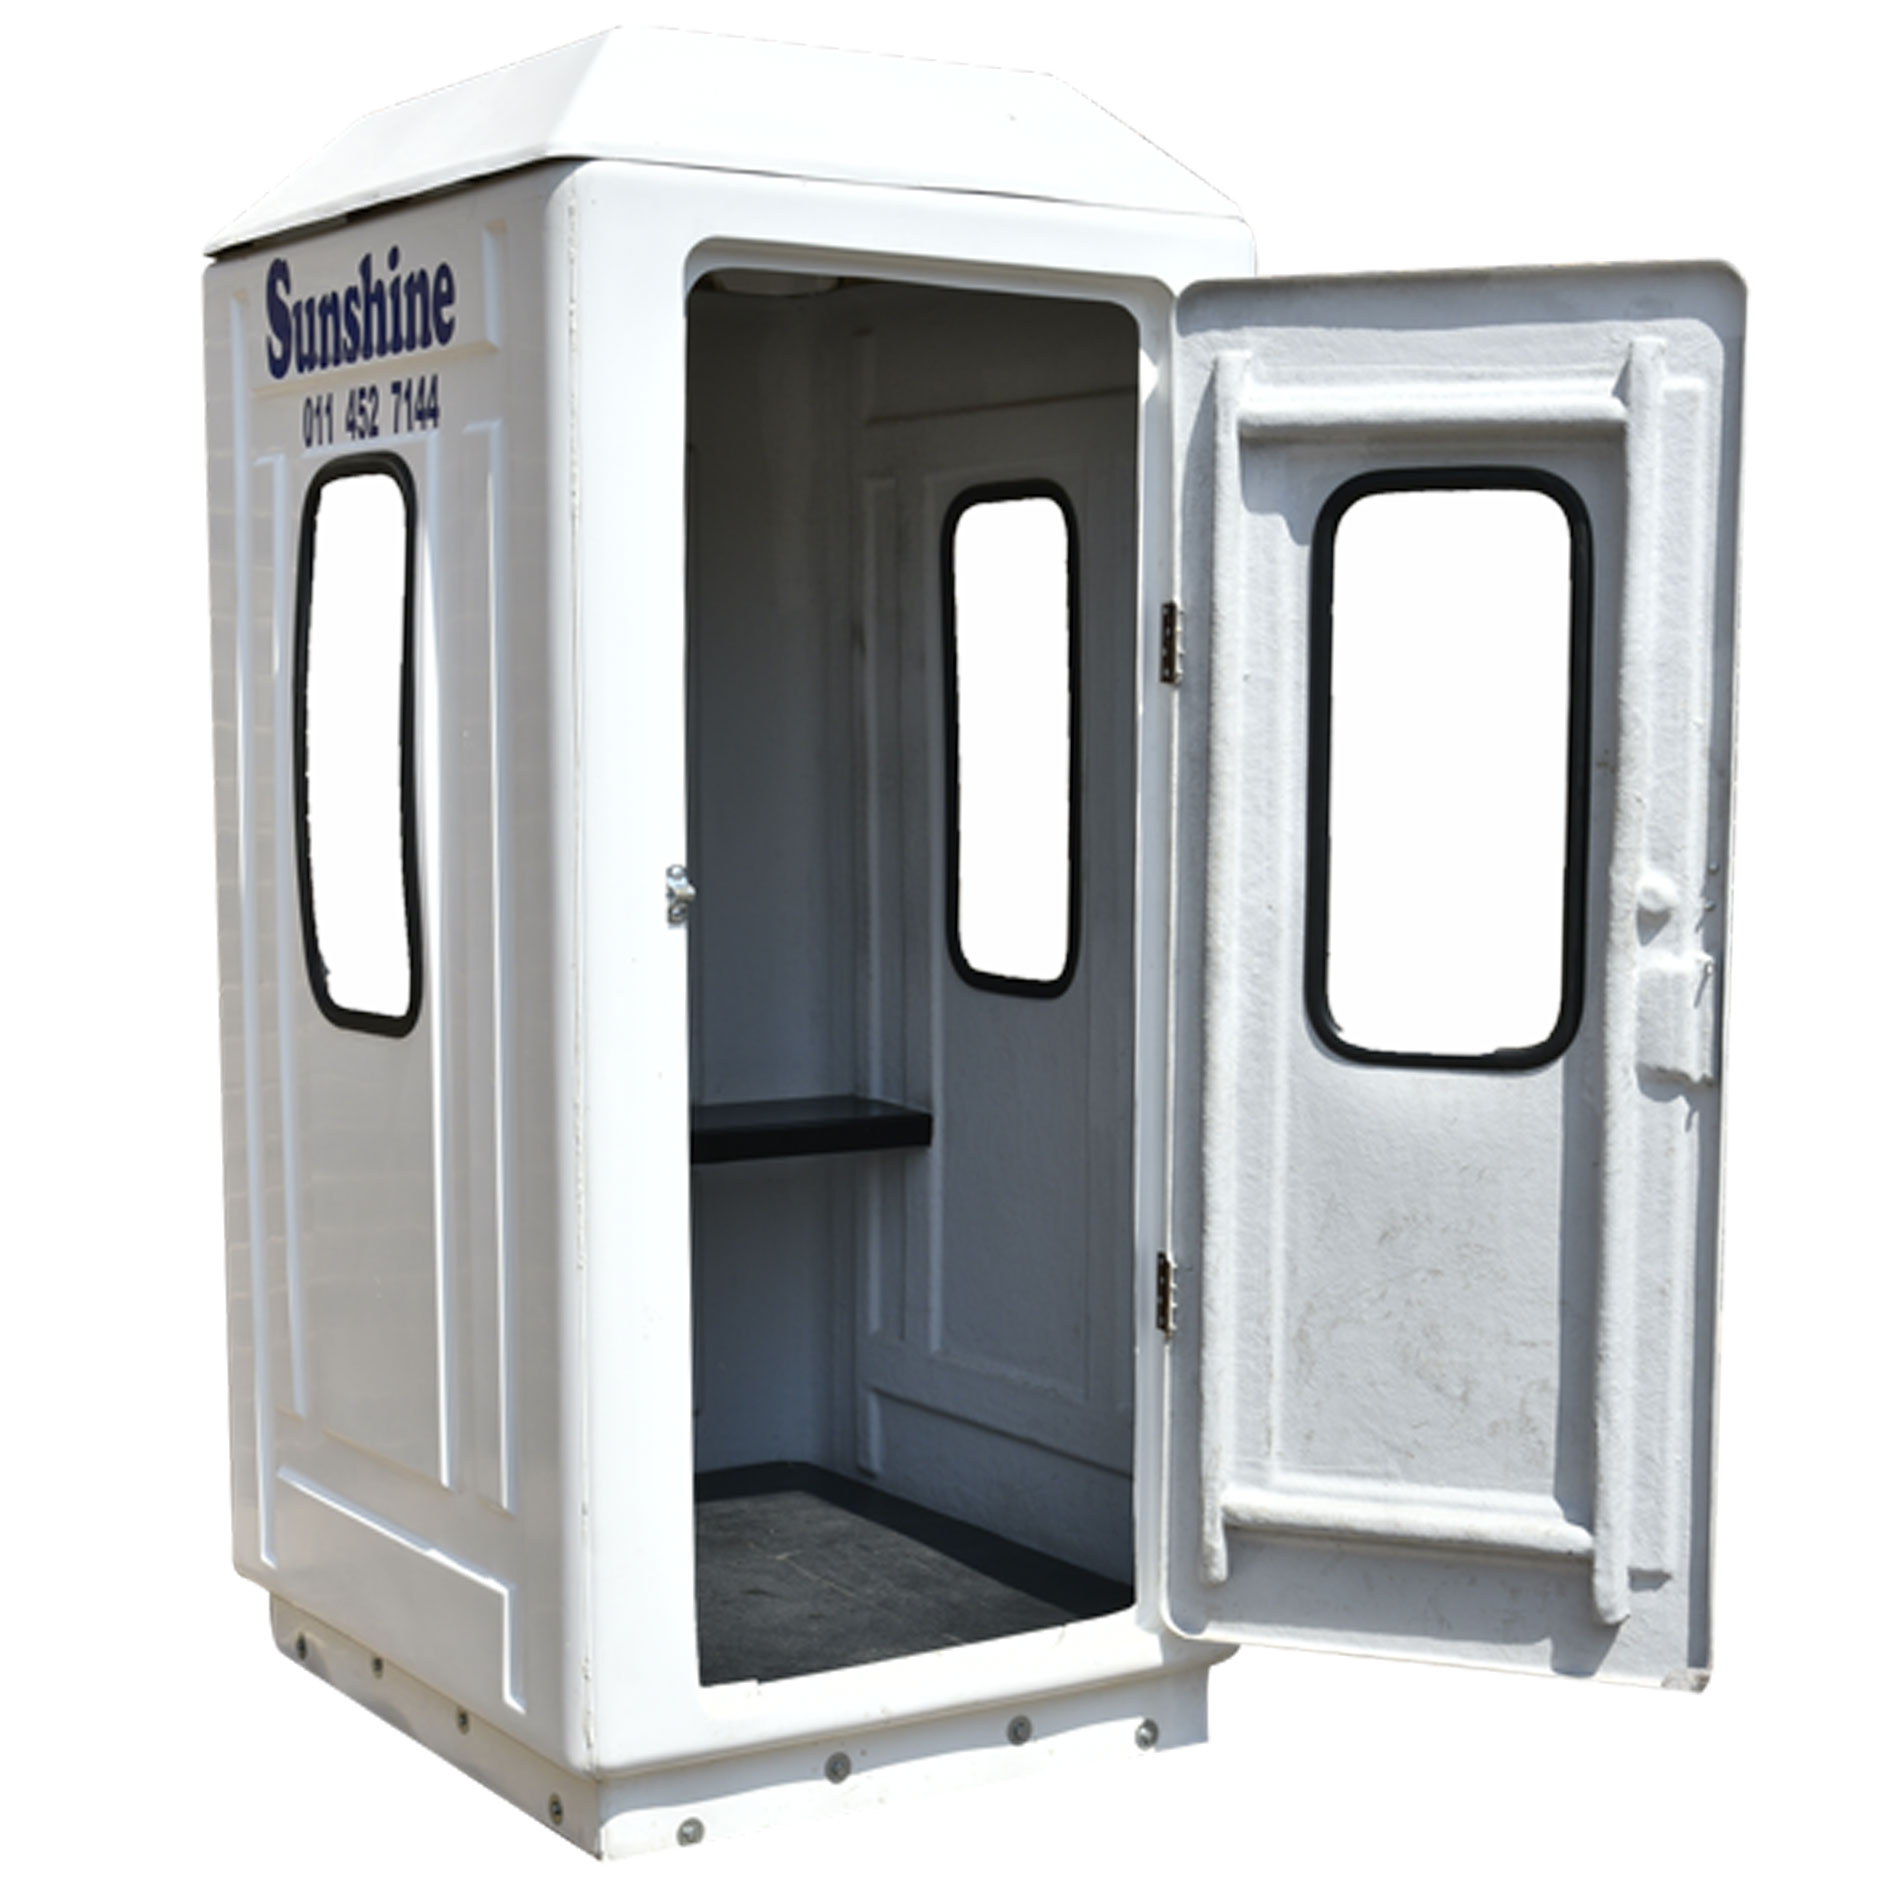 Mobile Security Hut